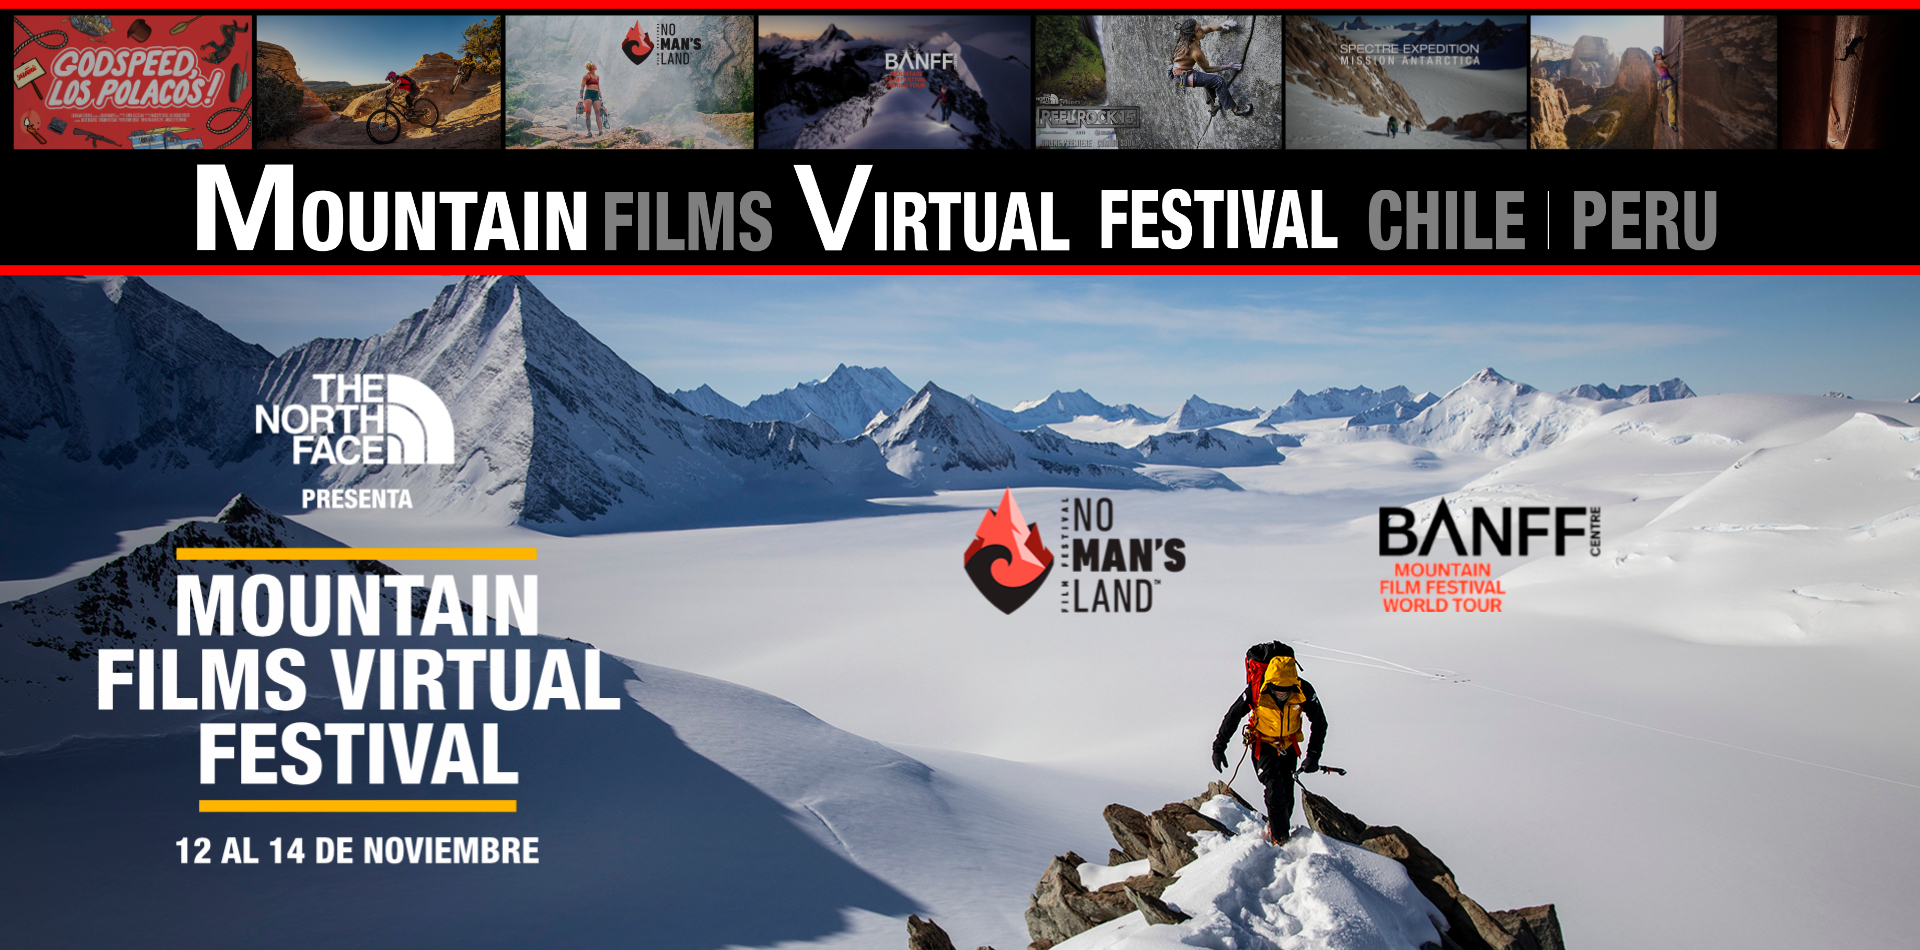 MOUNTAINFILMS VIRTUAL FESTIVAL CHILE / PERU